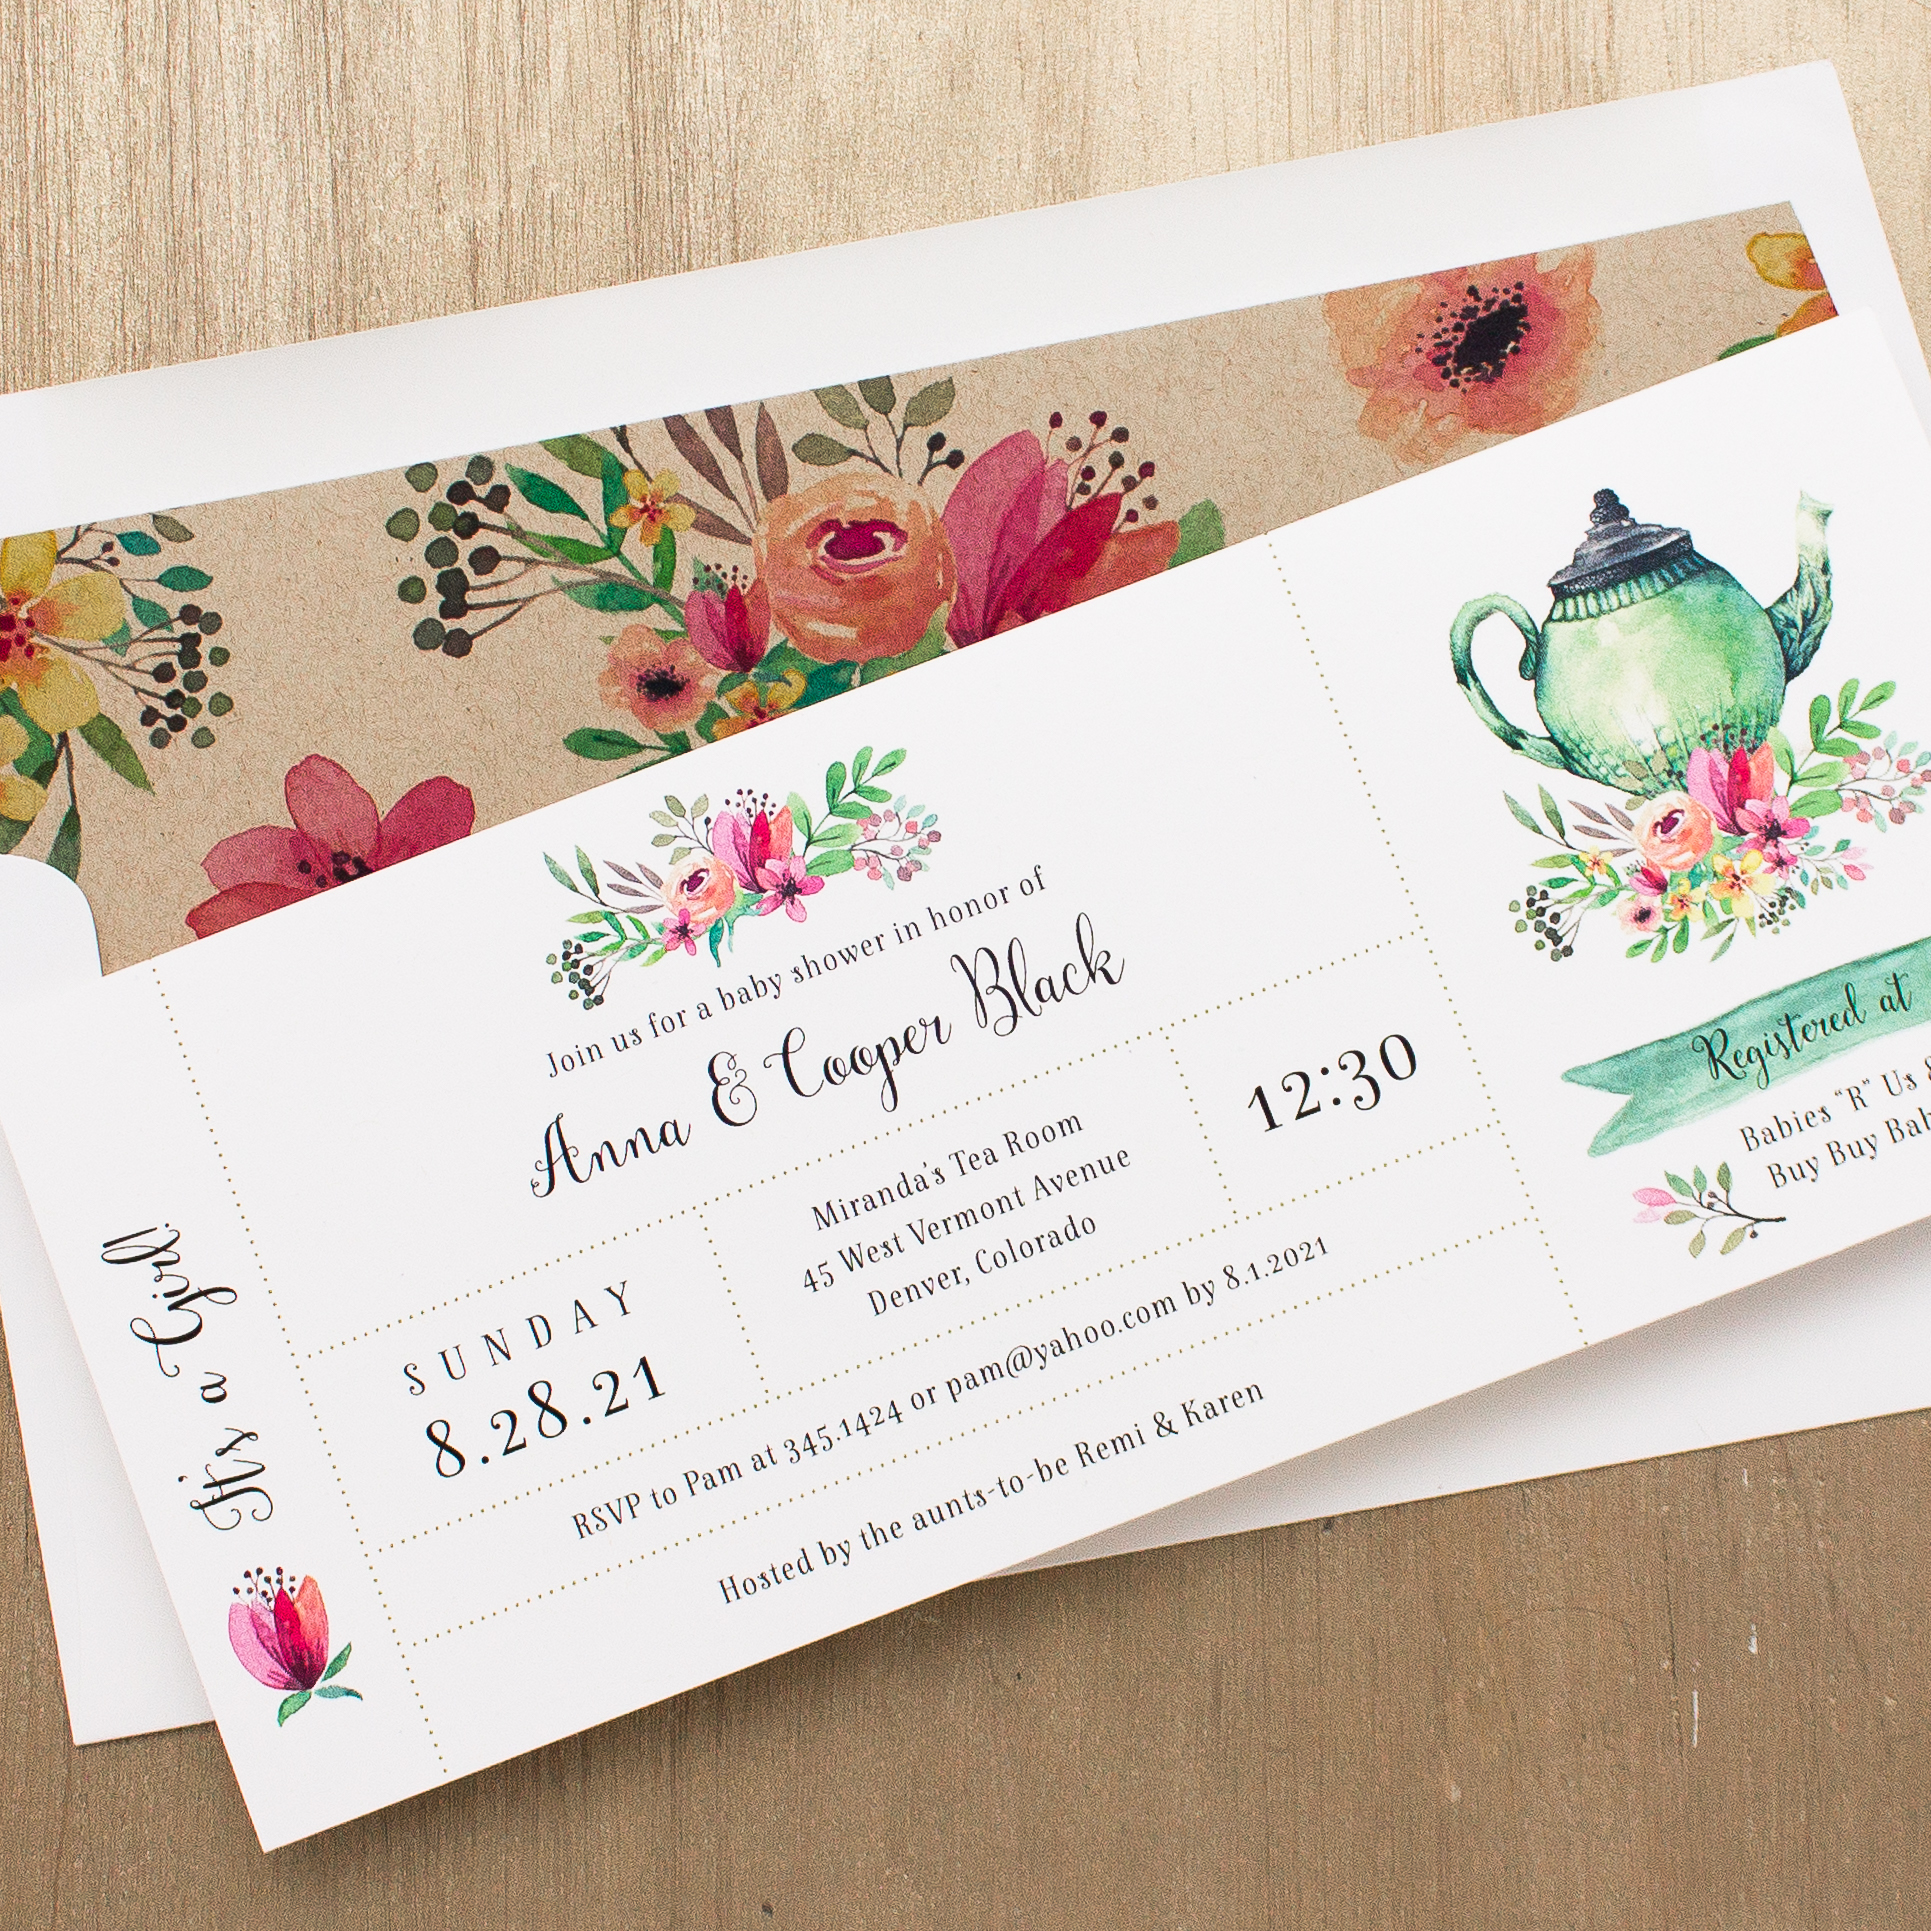 Tea Time Baby Shower Invites With Envelope Liners   Beacon ...